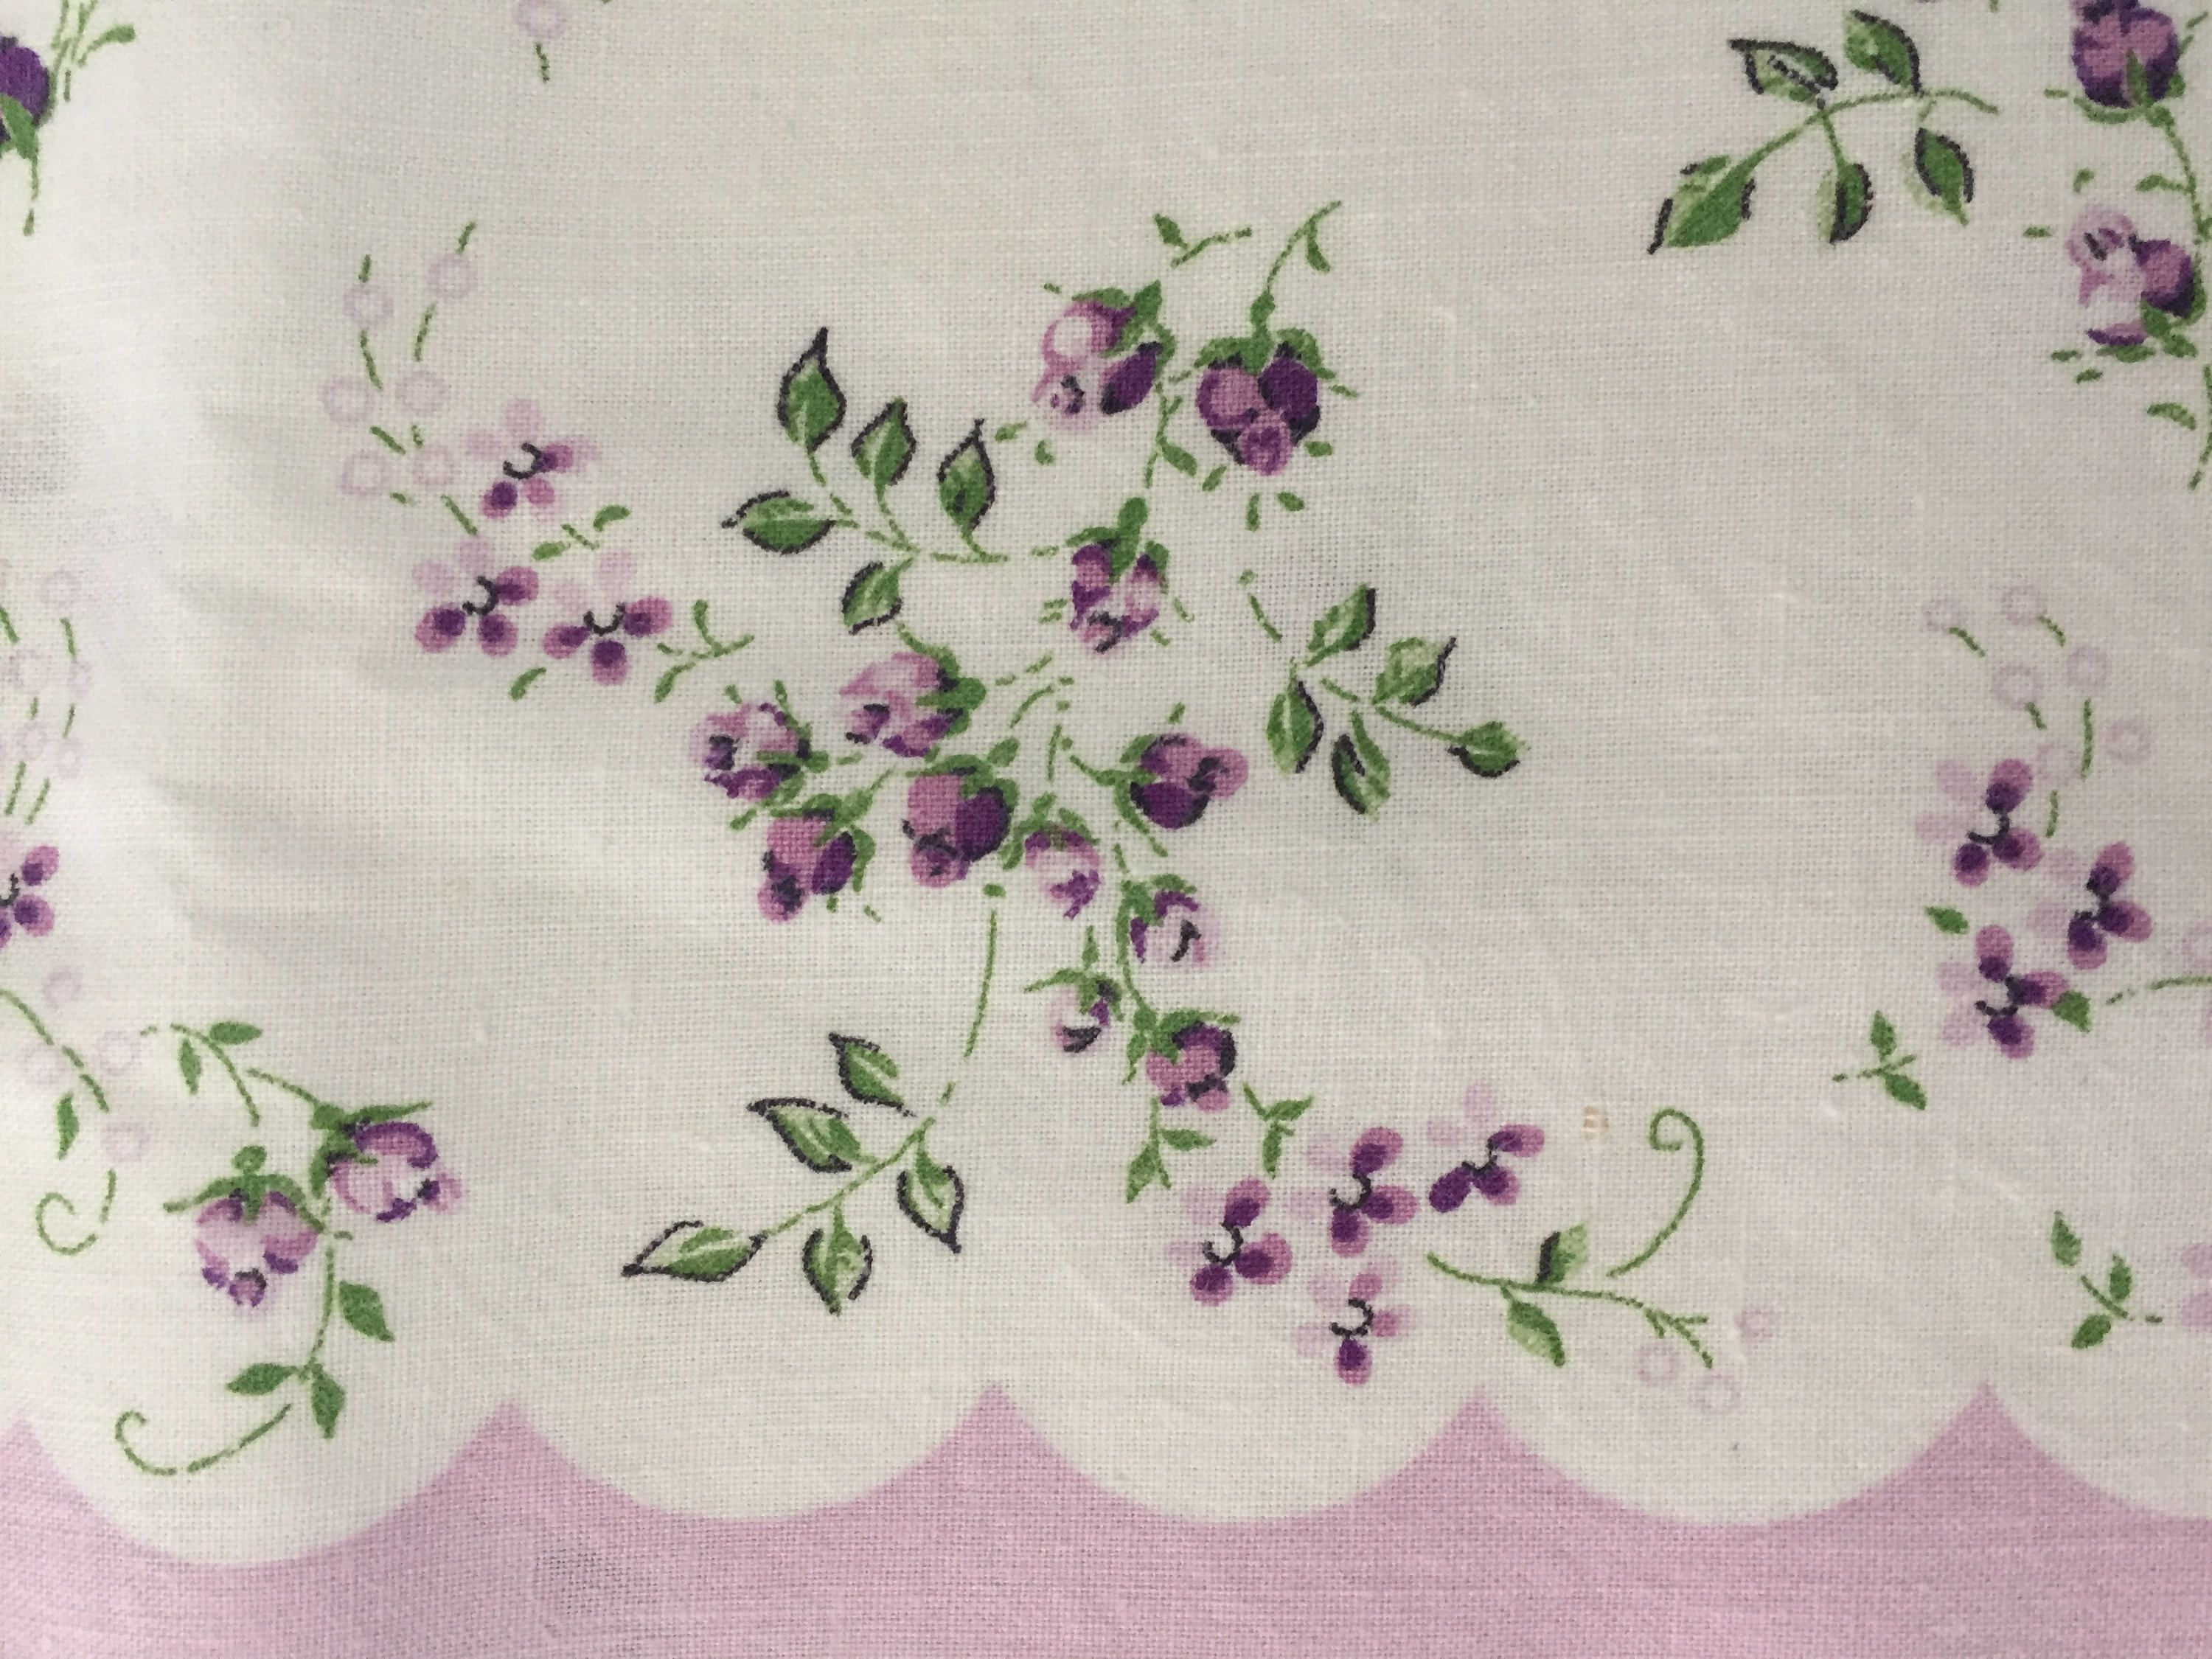 Vintage Floral Border Print Fabric White W Lavender Flowers Cotton Sewing And Crafting Material Scalloped Pu Printing On Fabric Floral Border Vintage Fabrics